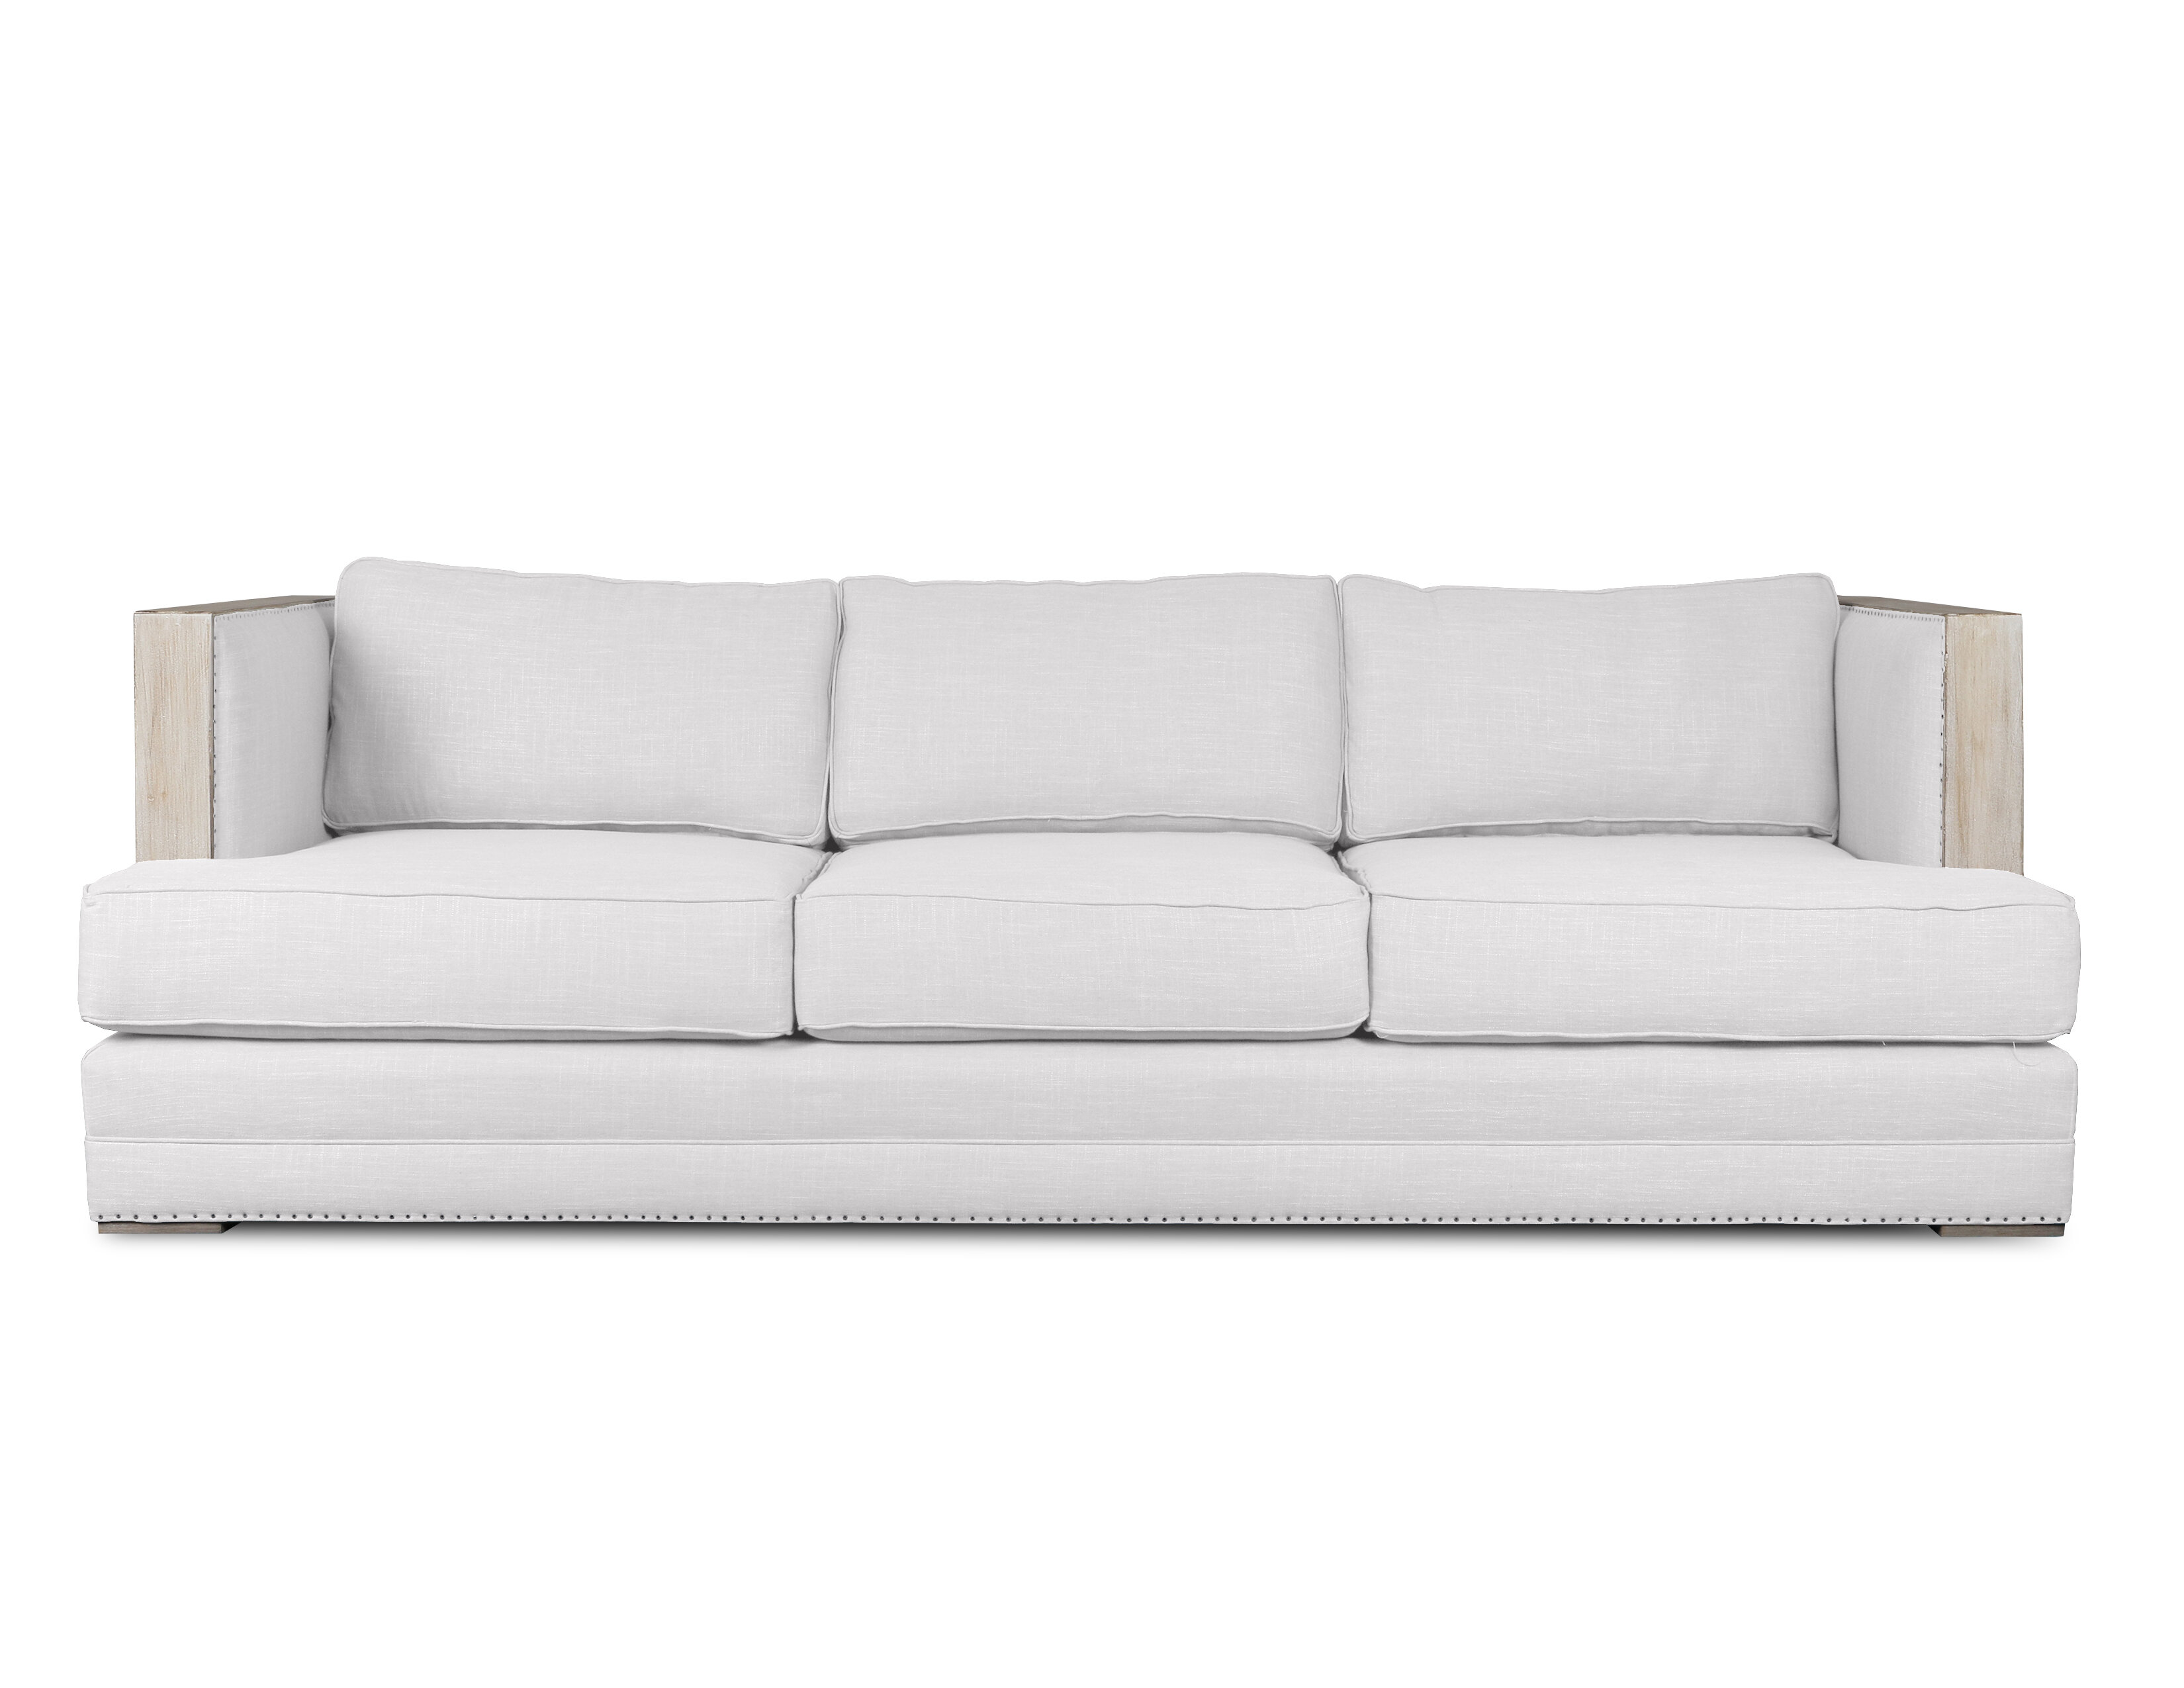 White vintage couch French Provincial Furniture Wayfair South Cone Home Marion Vintage Sofa Wayfair